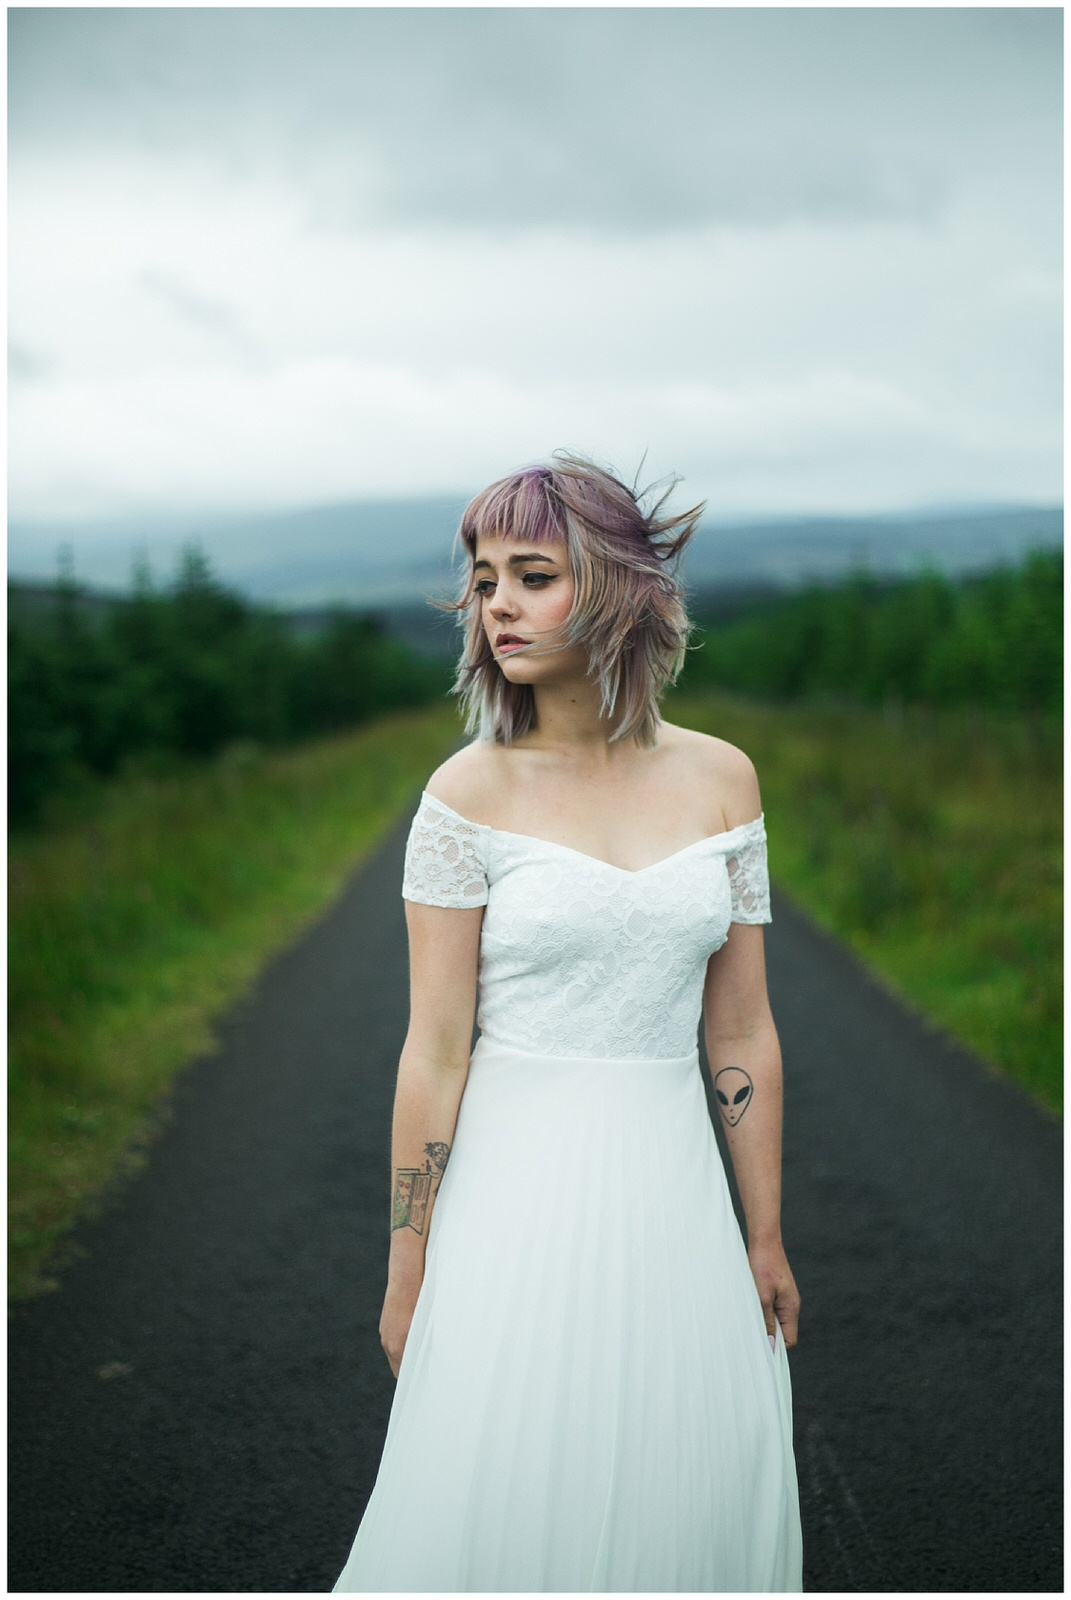 Portrait image of a bride in A full length off the shoulder lace dress from ASOS